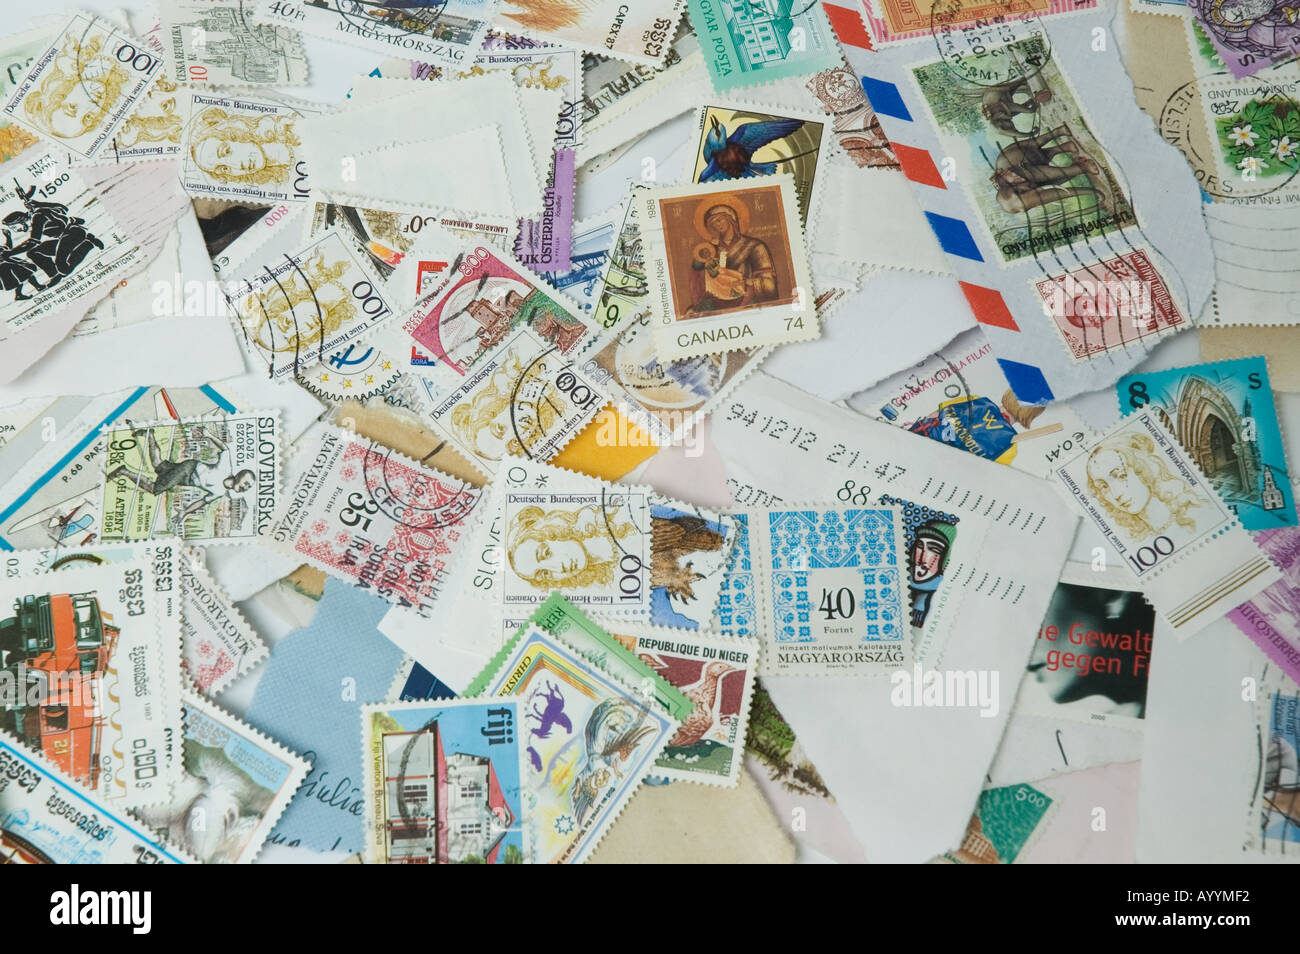 postage stamps - Stock Image